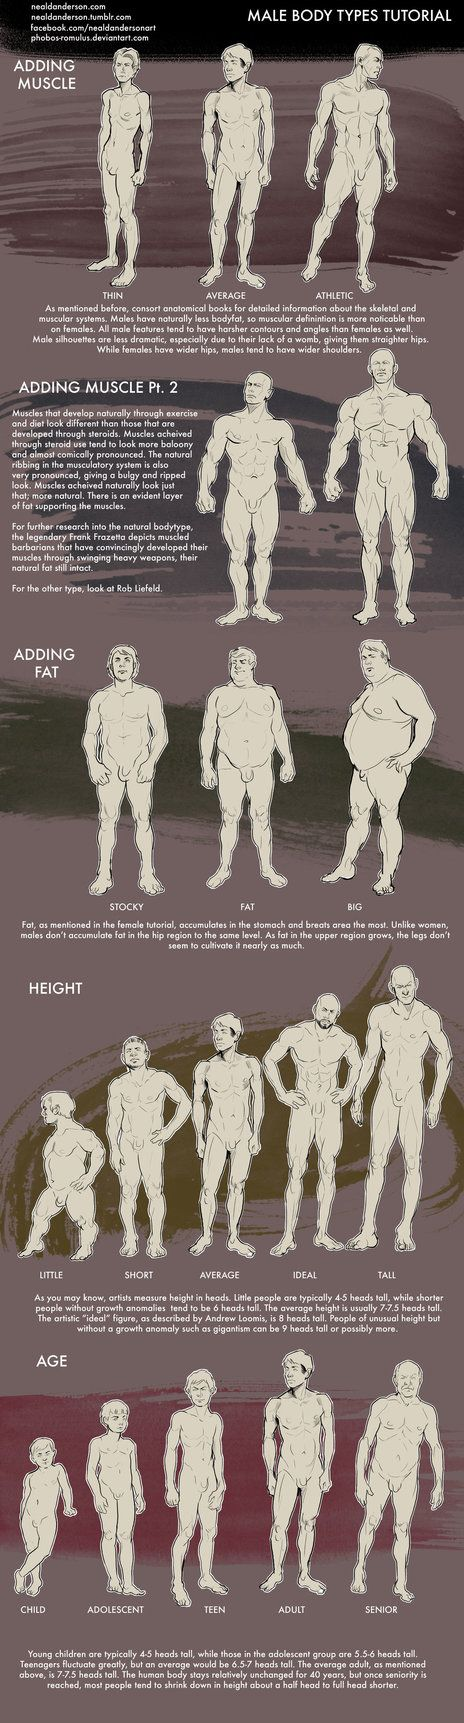 Male Body Types Tutorial by Phobos-Romulus (www.phobos-romulus.deviantart.com/art/Male-Body-Types-Tutorial-500949383) ★ || CHARACTER DESIGN REFERENCES (pinterest.com/characterdesigh) (www.facebook.com/CharacterDesignReferences) •